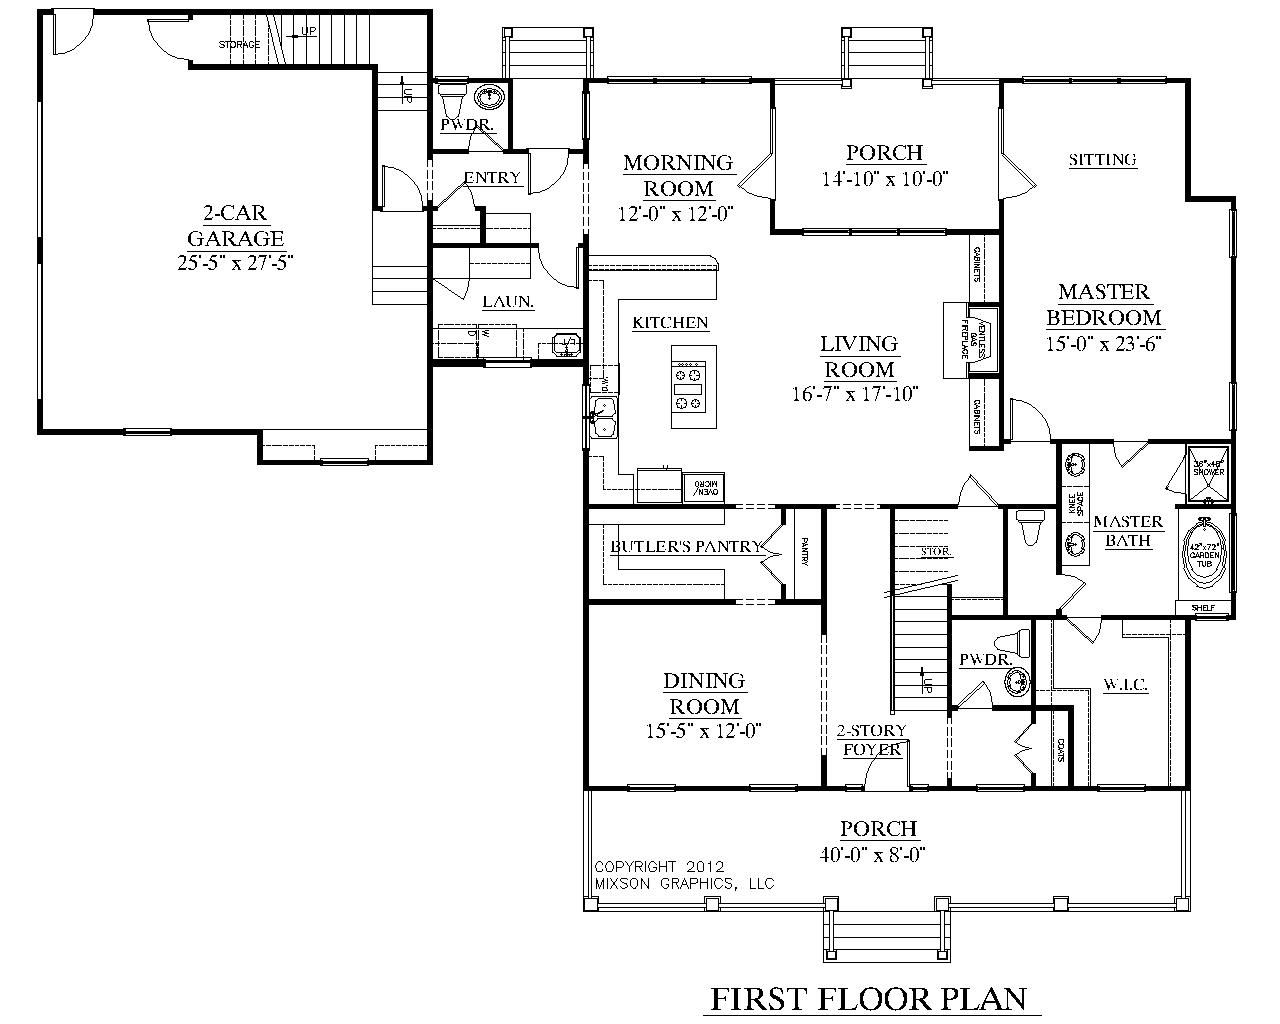 House Plans With Media Room house plans with downstairs media room – house design ideas